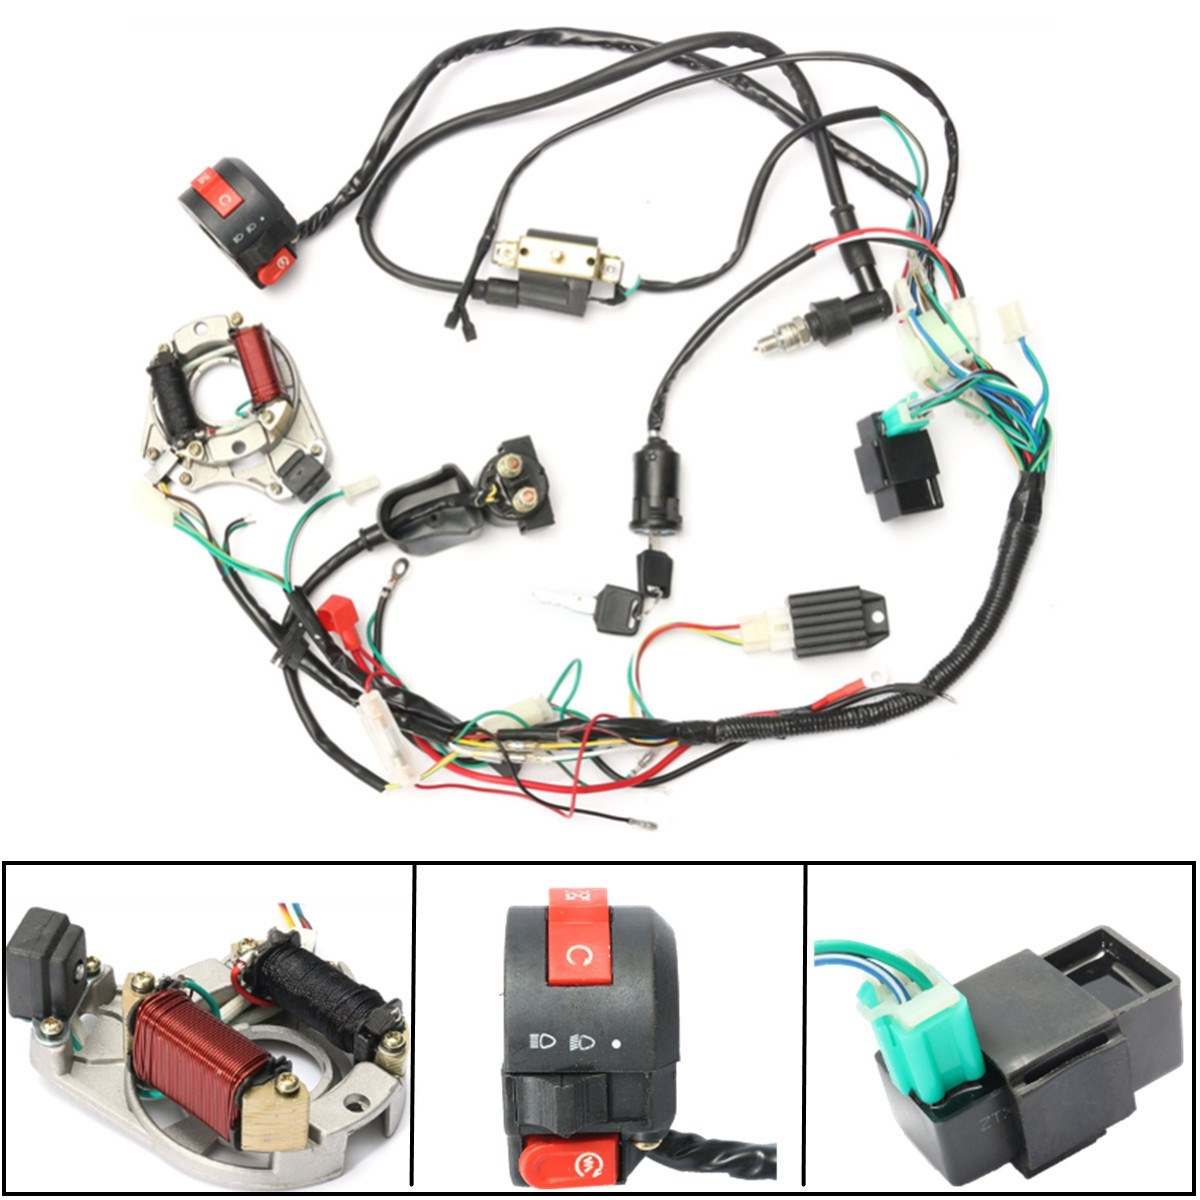 50 70 90 110CC CDI Wire Harness Assembly Wiring Kit Set for ATV Electric Start Quad harness tape picture more detailed picture about 50 70 90 110cc wiring diagram for electric start pit bike at aneh.co